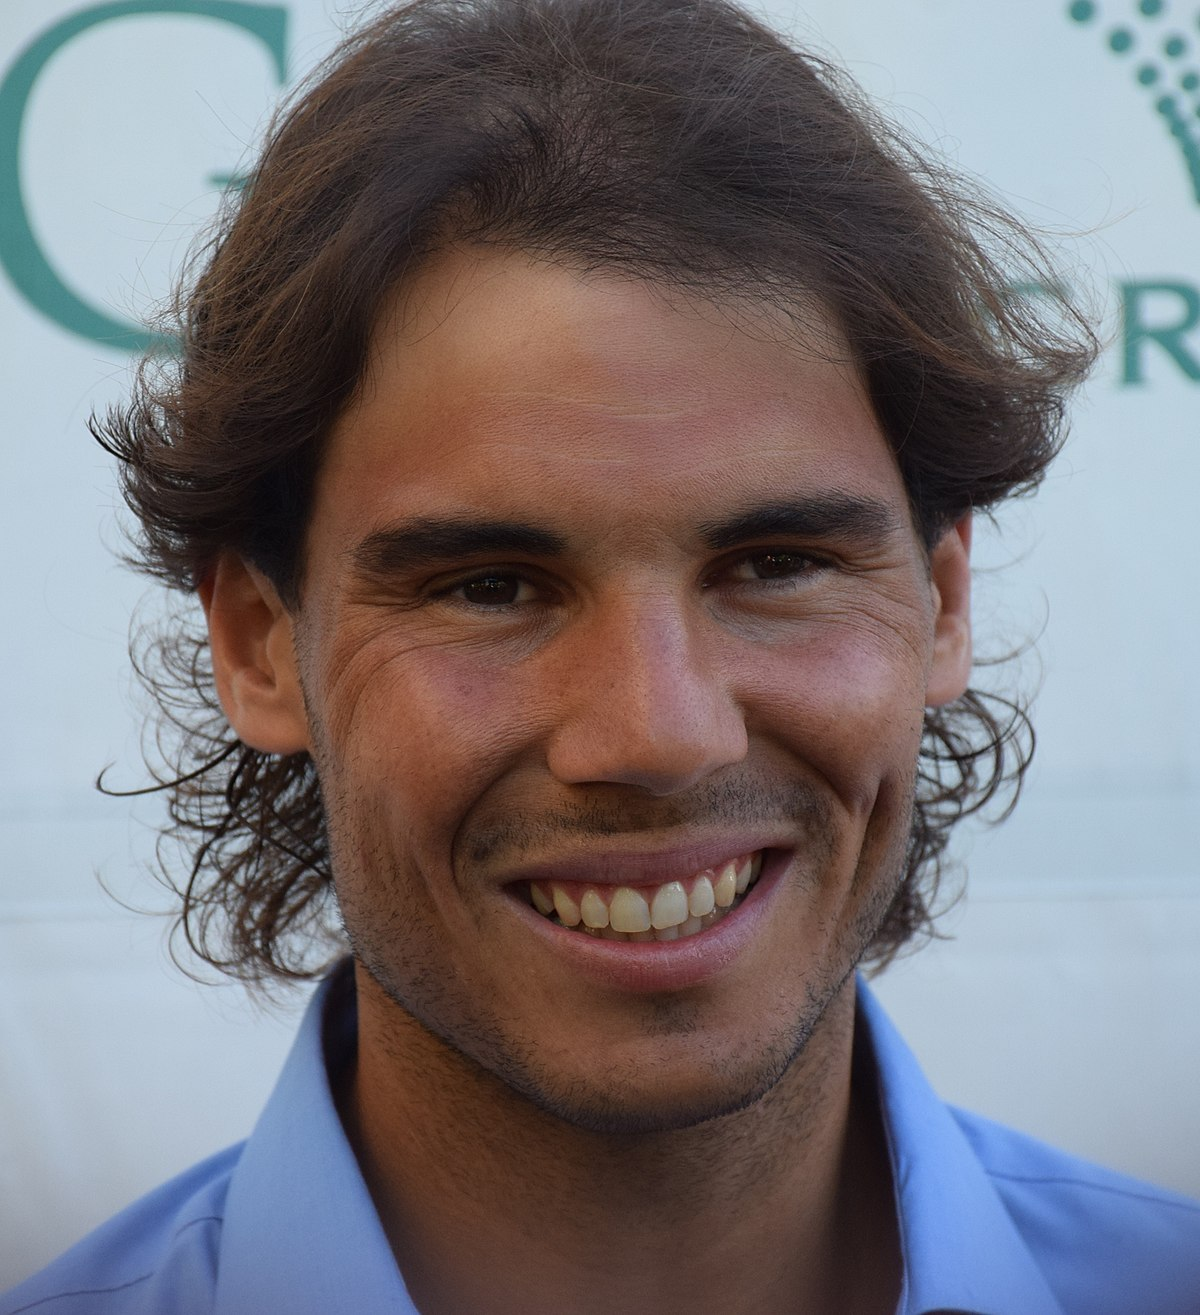 Barcelona Open: Rafa Nadal faces Kei Nishikori in final ...